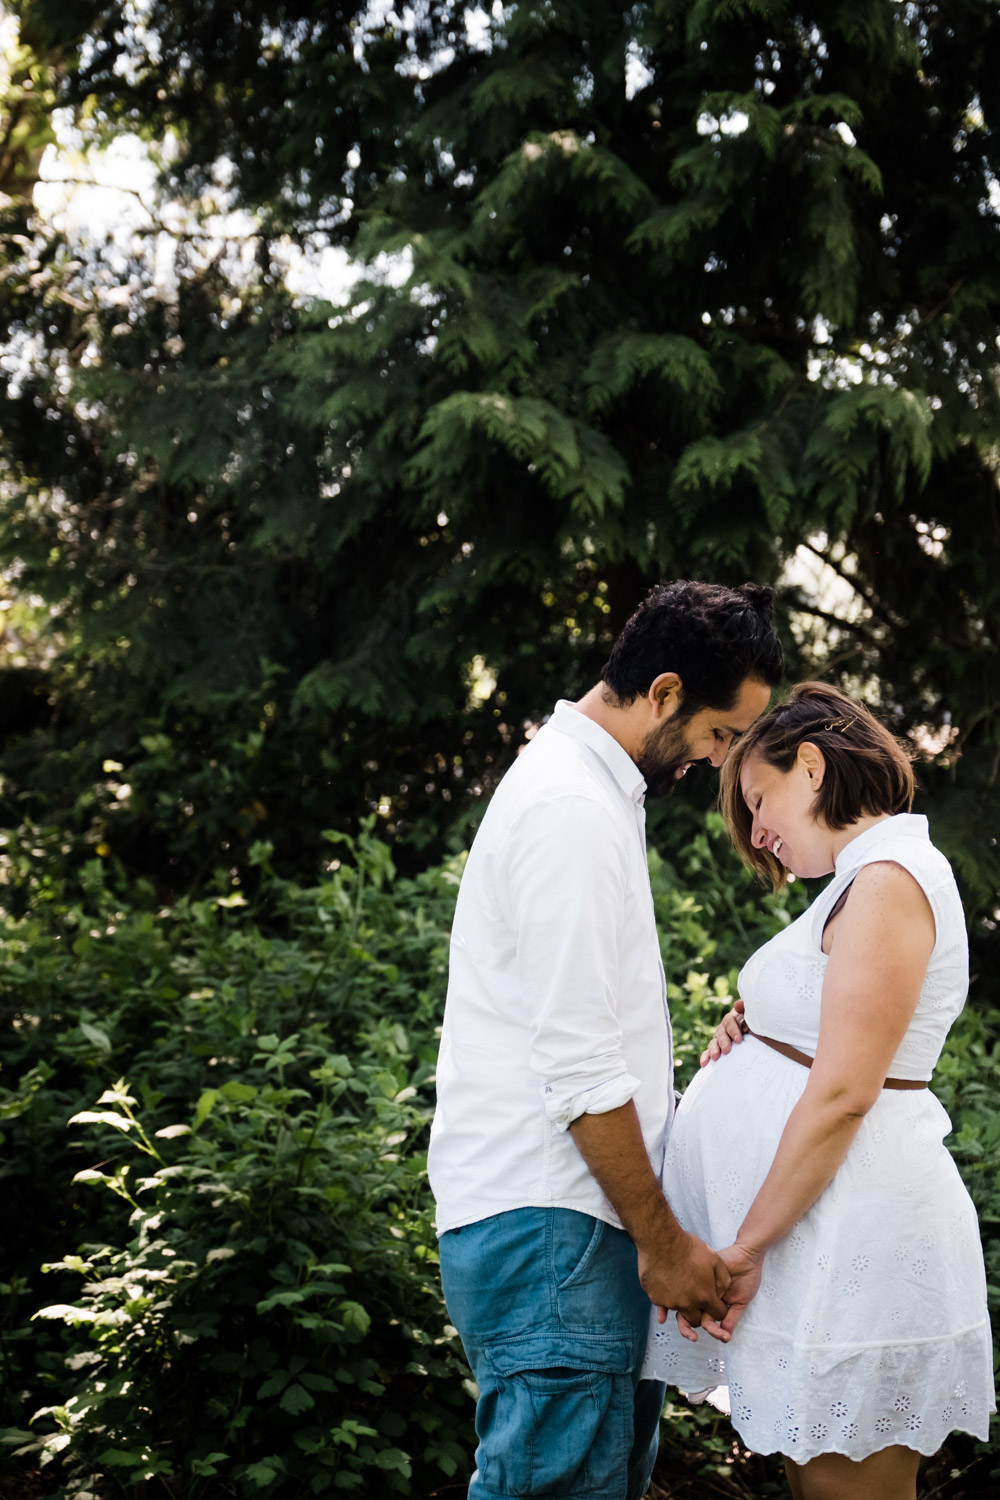 Vancouver-Maternity-Photography.jpg